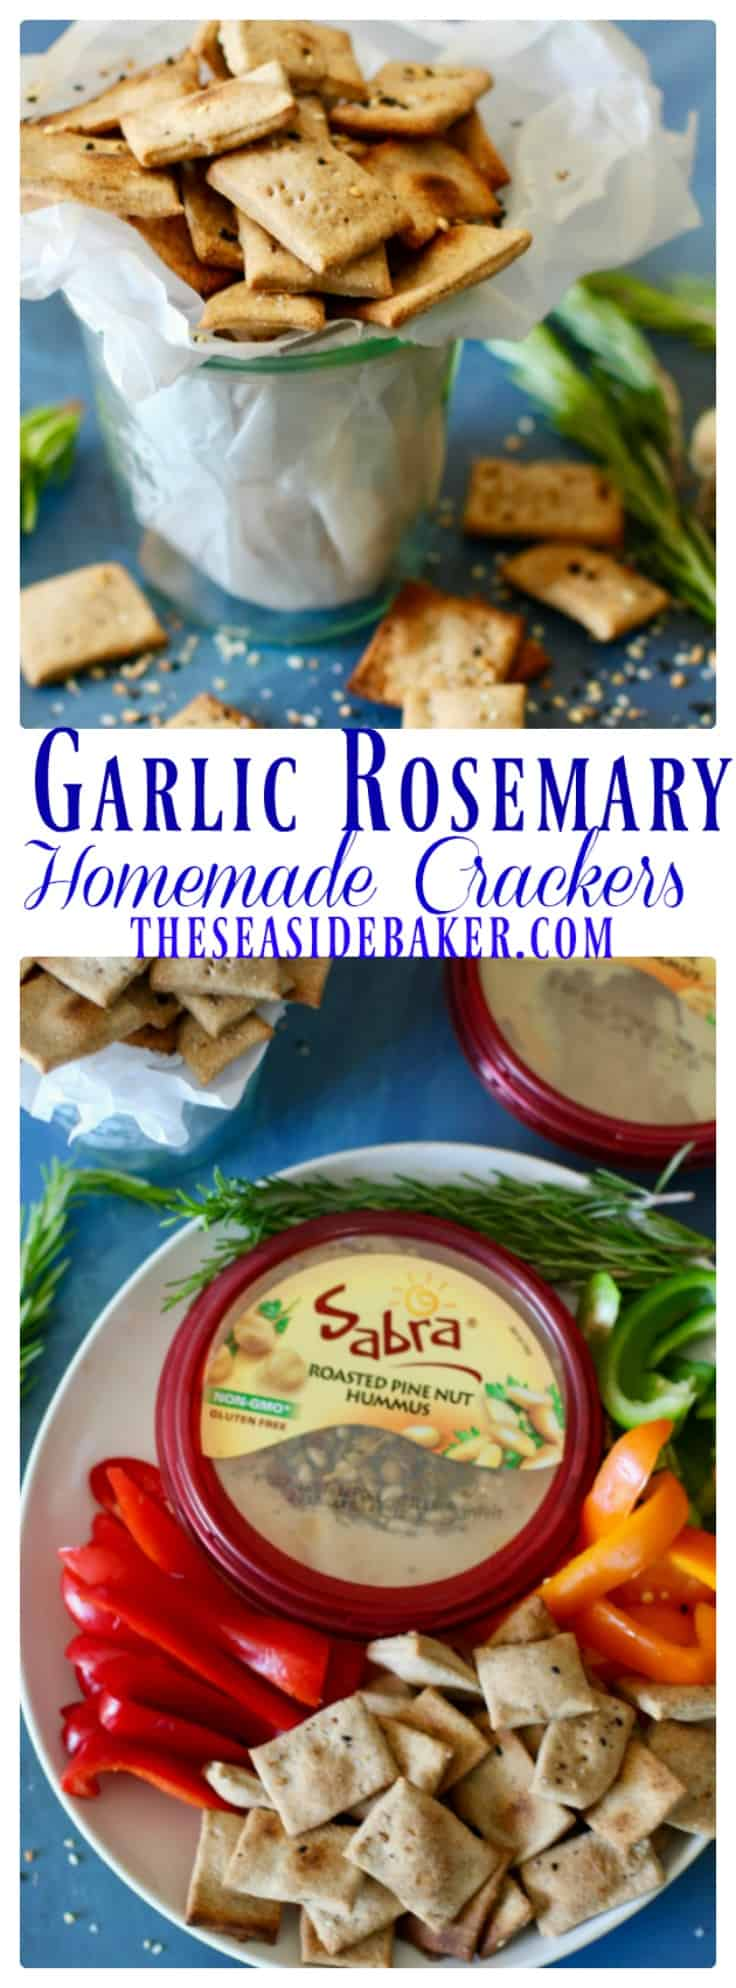 Garlic Rosemary Crackers